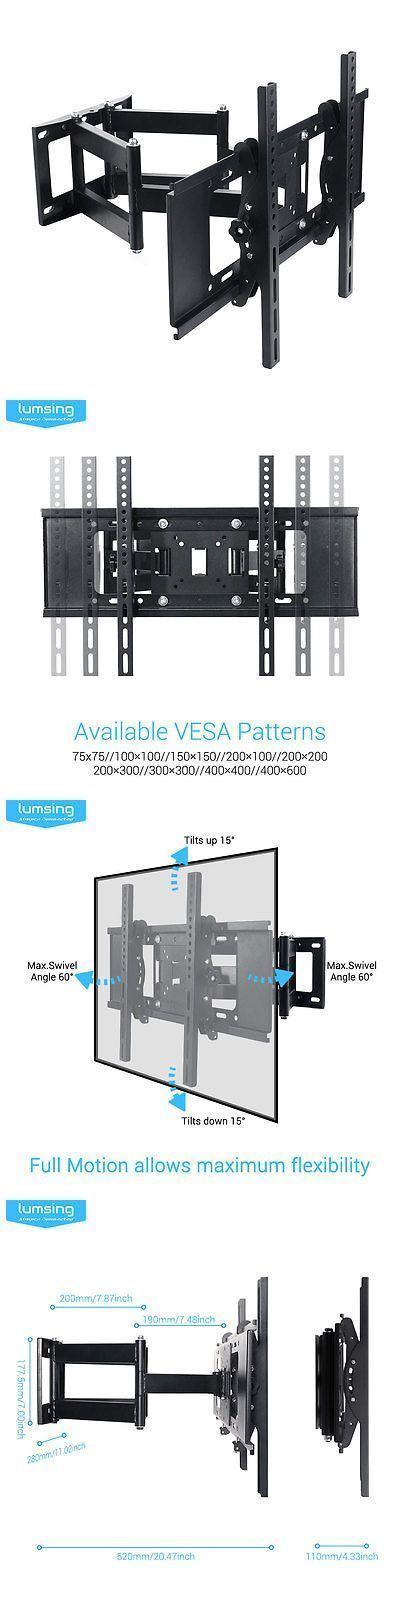 TV Mounts and Brackets: Full Motion Tv Wall Mount 32 39 40 42 50 55 60 65 70 For Samsung Vizio Lg Sony -> BUY IT NOW ONLY: $40.99 on eBay!